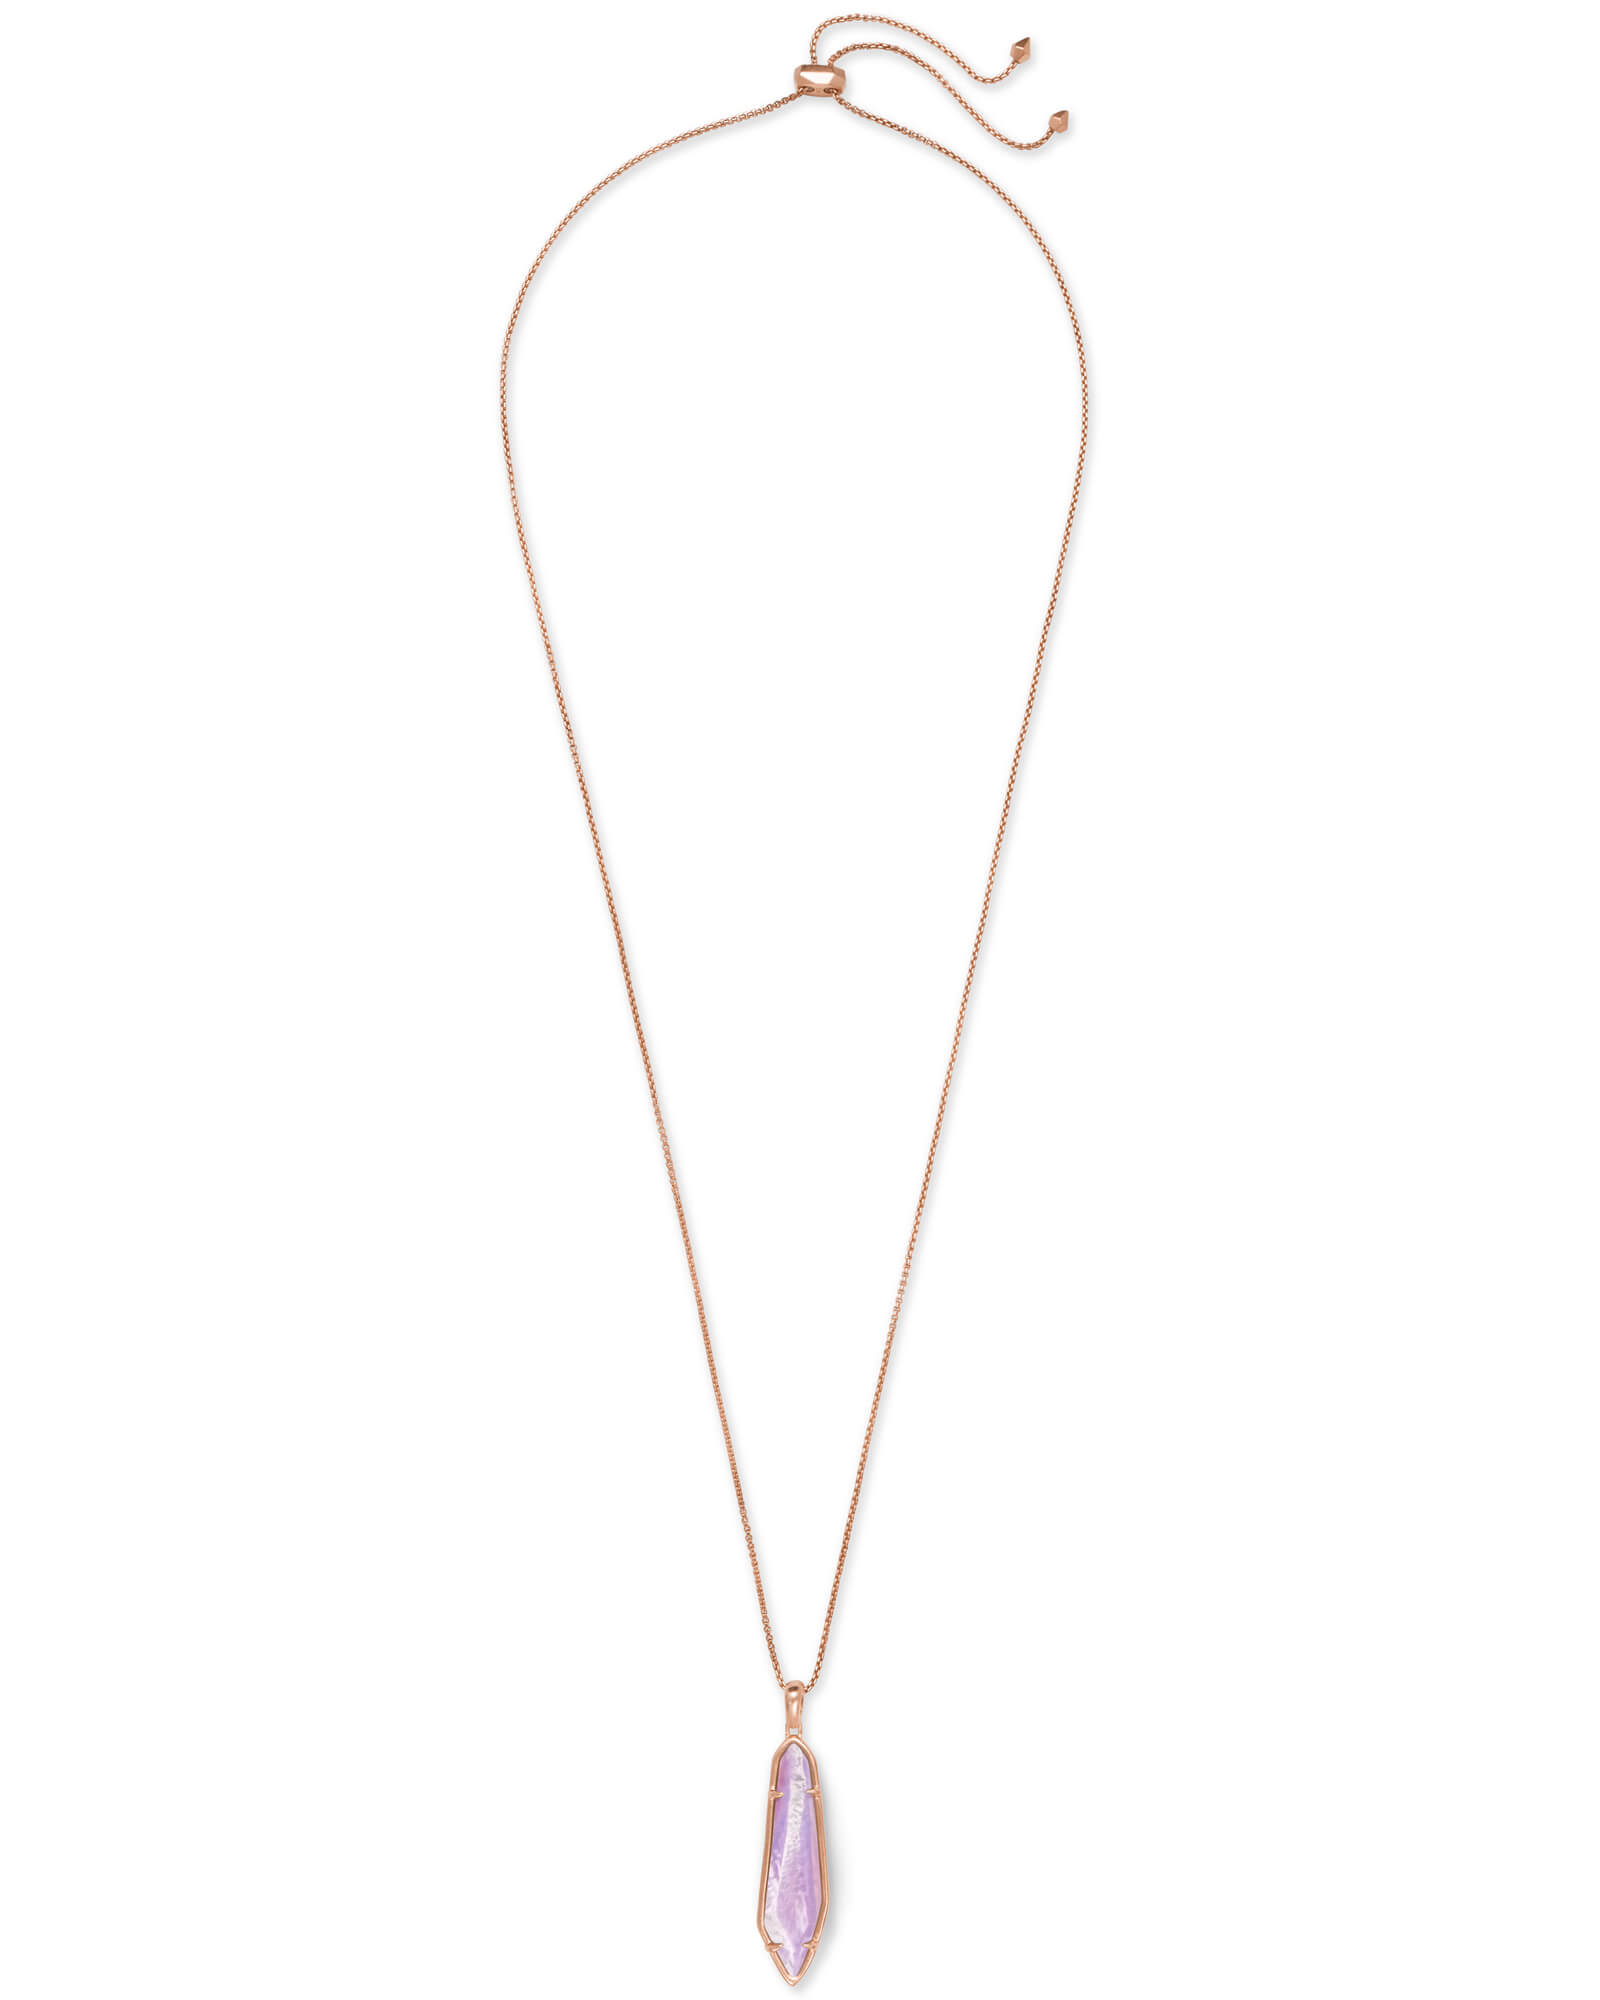 Cassidy Rose Gold Pendant Necklace In Lilac Mother of Pearl